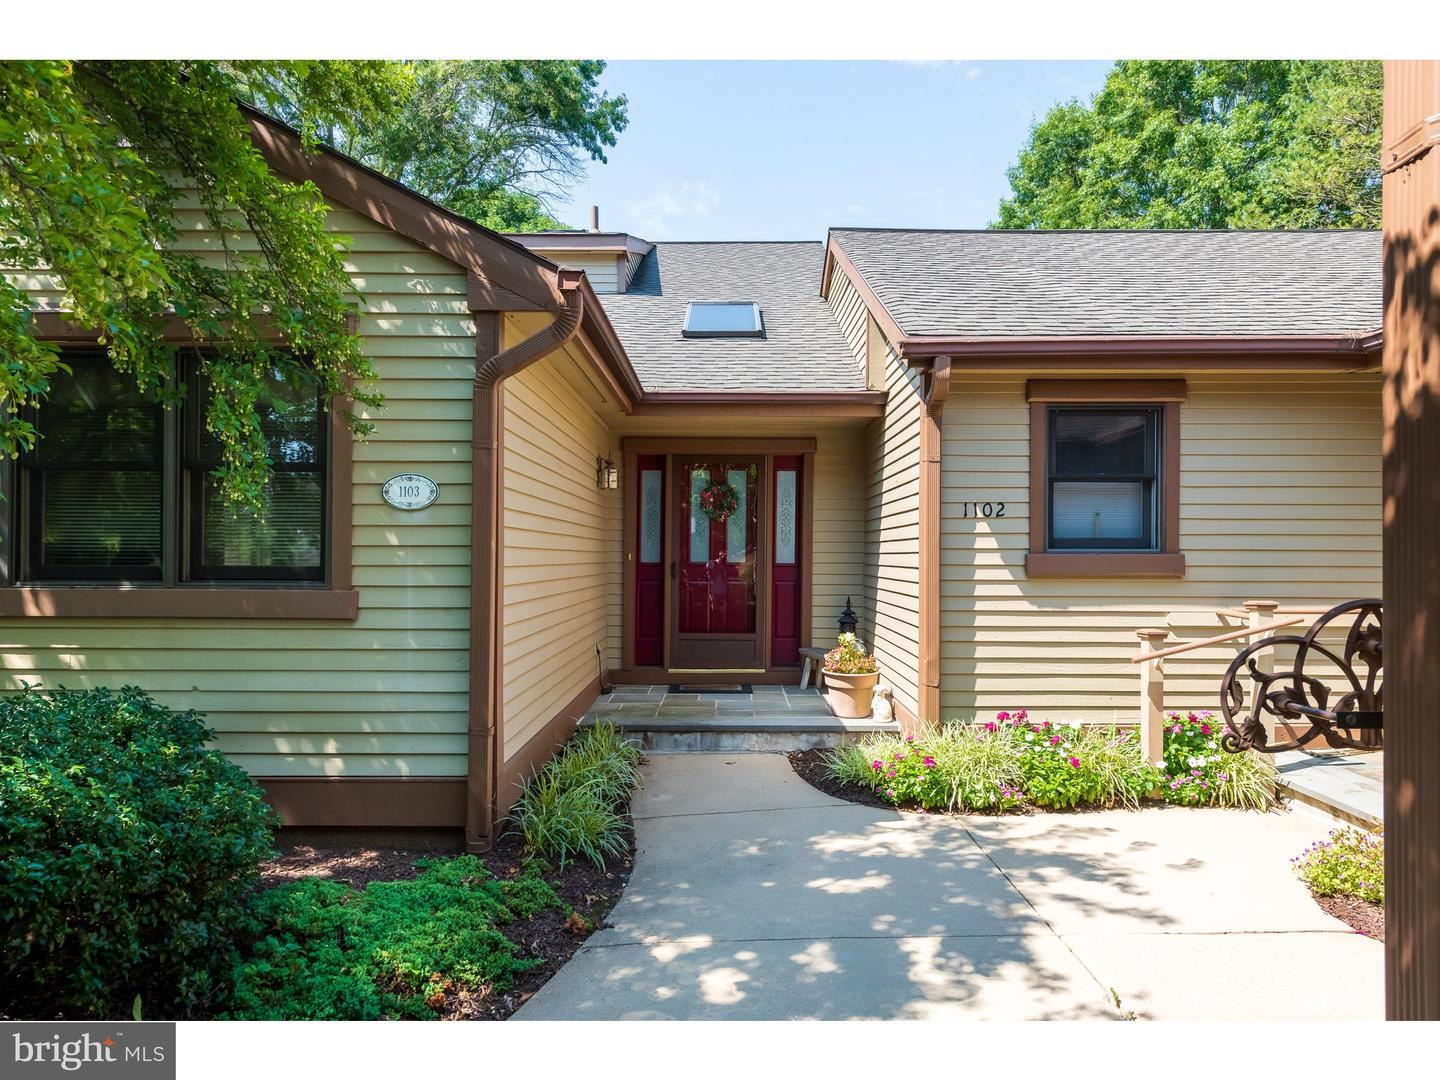 1103 LINCOLN DR, West Chester, PA 19380 - #: PACT508324